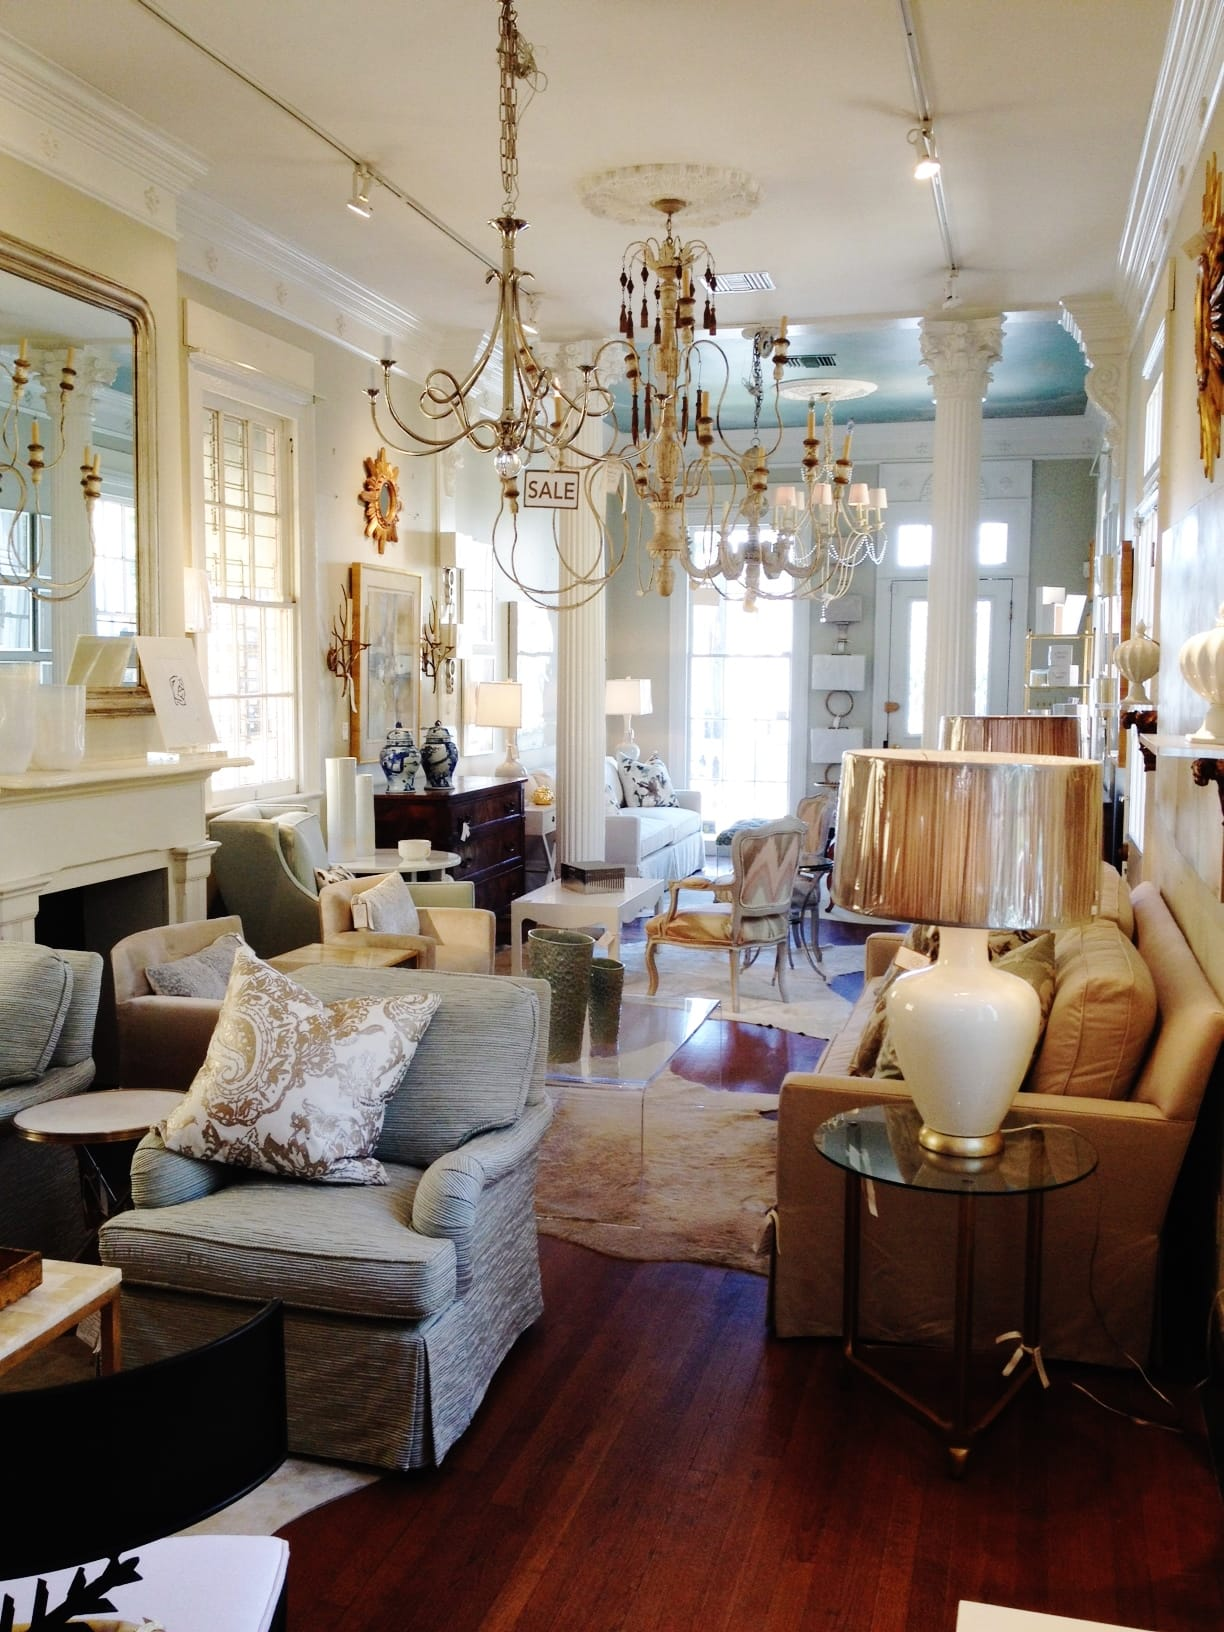 New orleans style - New orleans home decor stores property ...